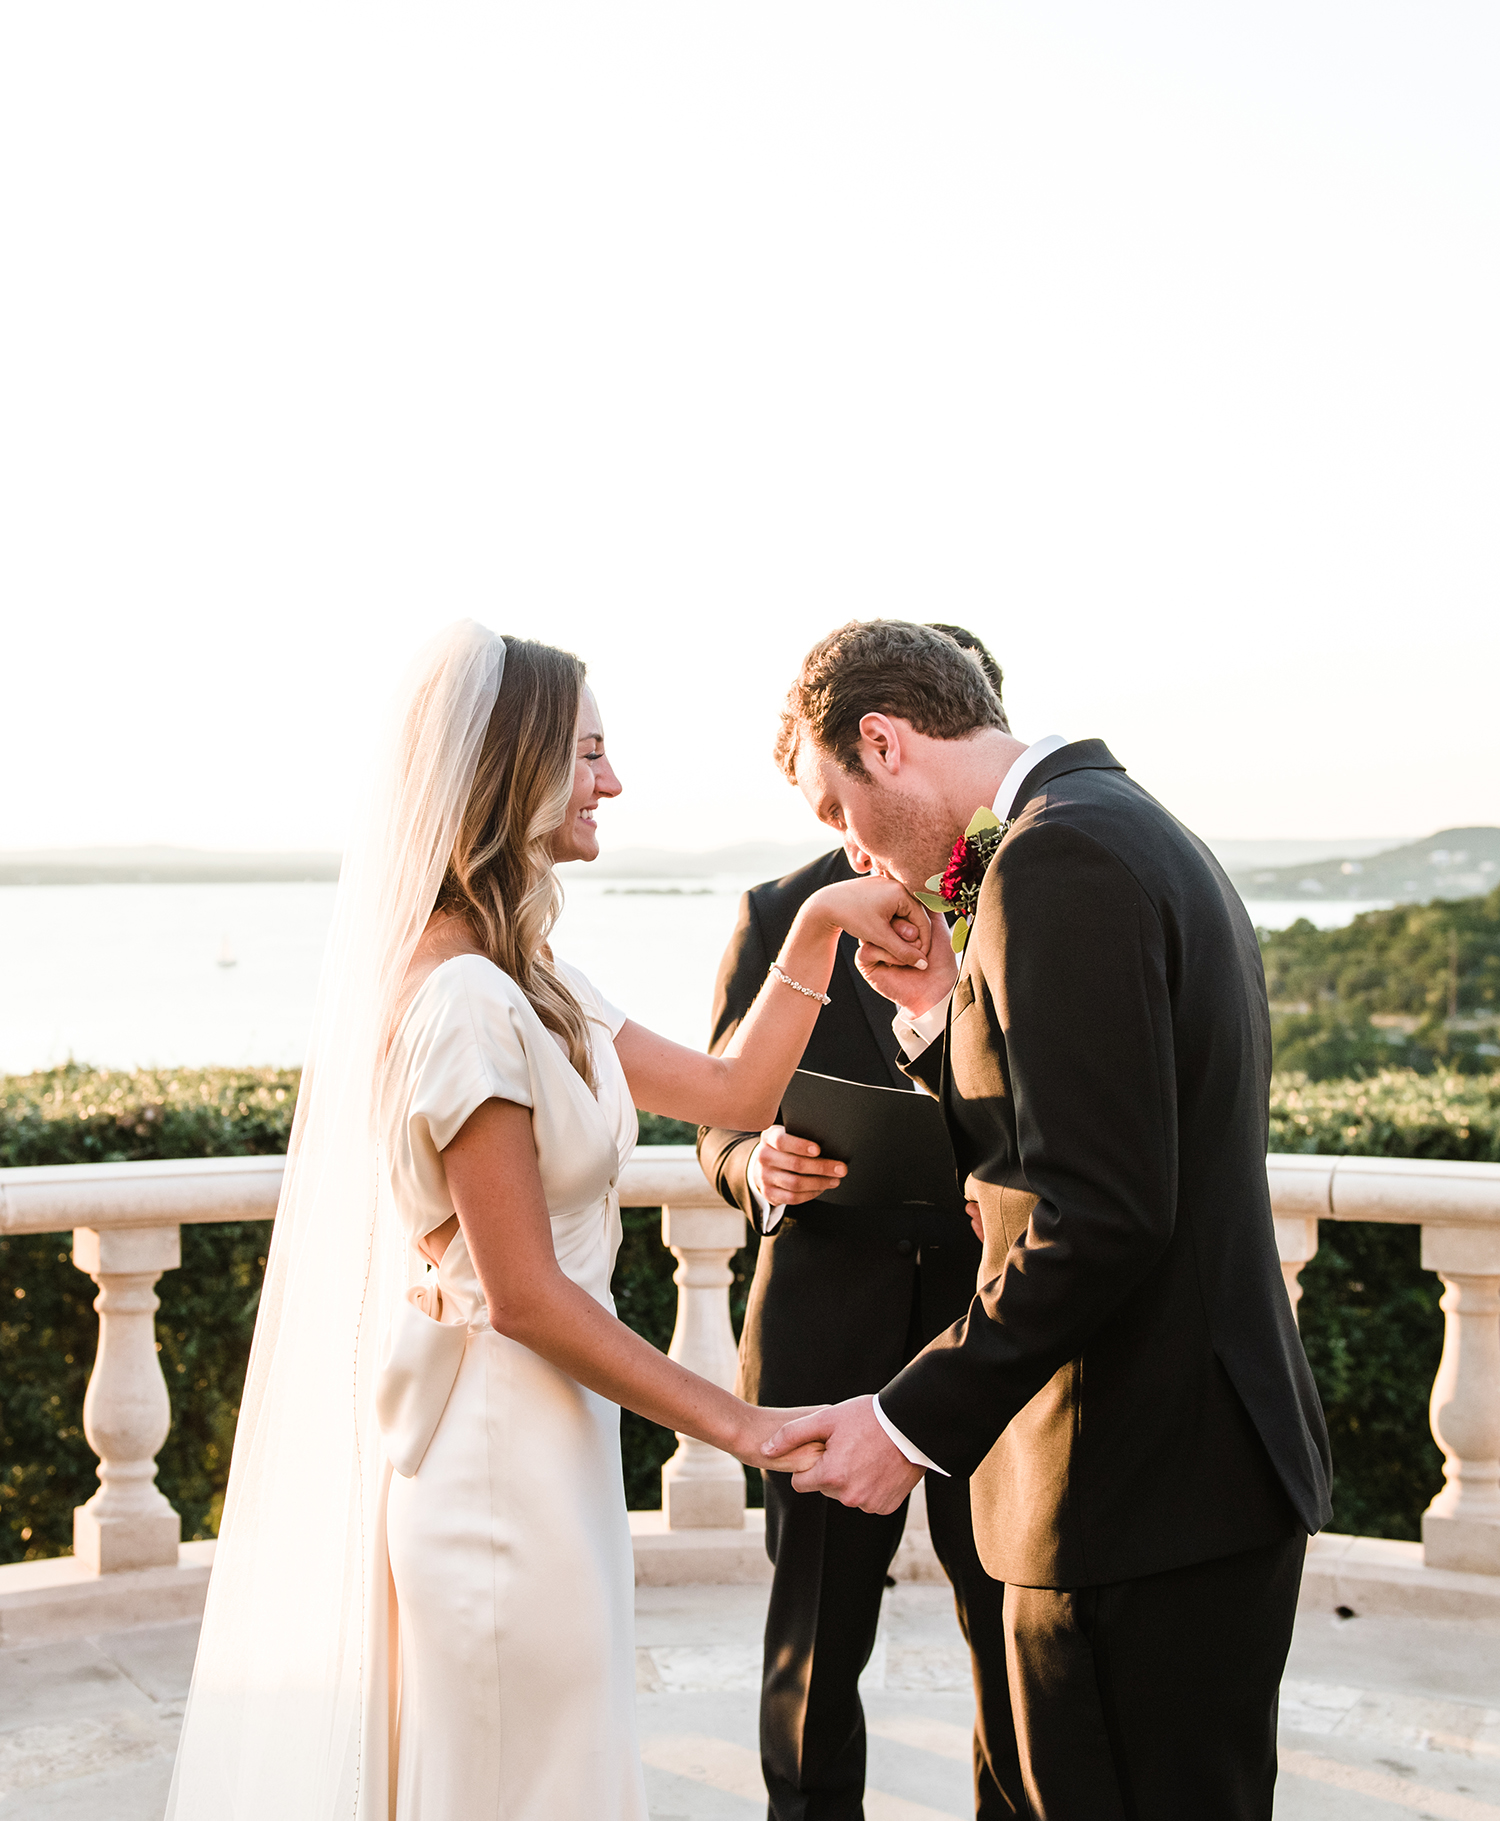 livvyland-blog-olivia-watson-wedding-villa-del-lago-austin-texas-fall-blush-burgundy-classic-romantic-altar-kiss